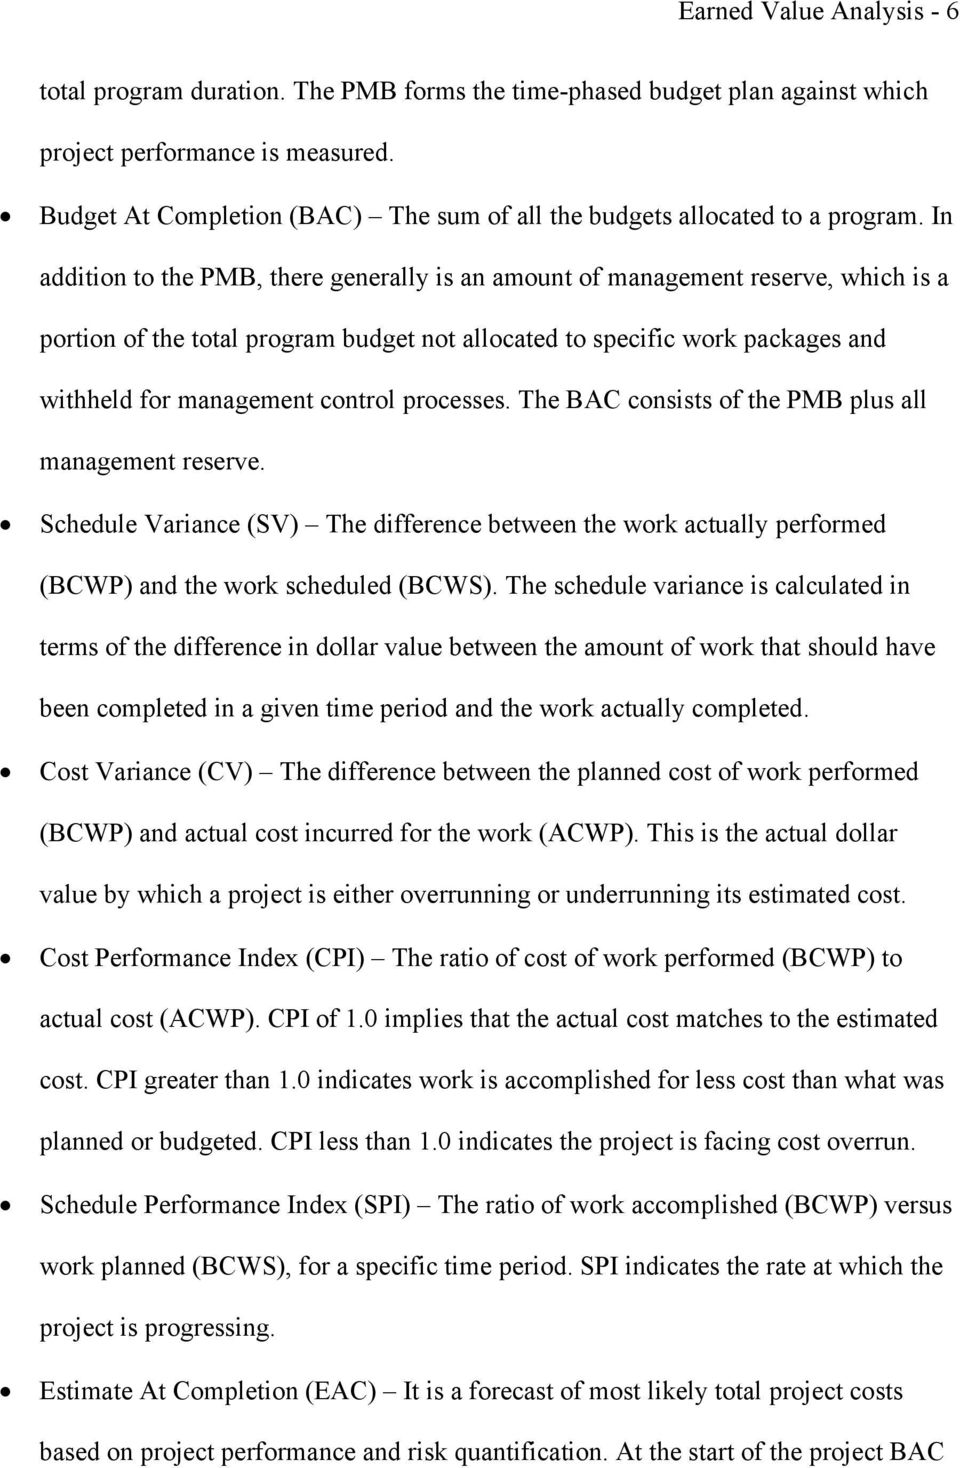 In addition to the PMB, there generally is an amount of management reserve, which is a portion of the total program budget not allocated to specific work packages and withheld for management control